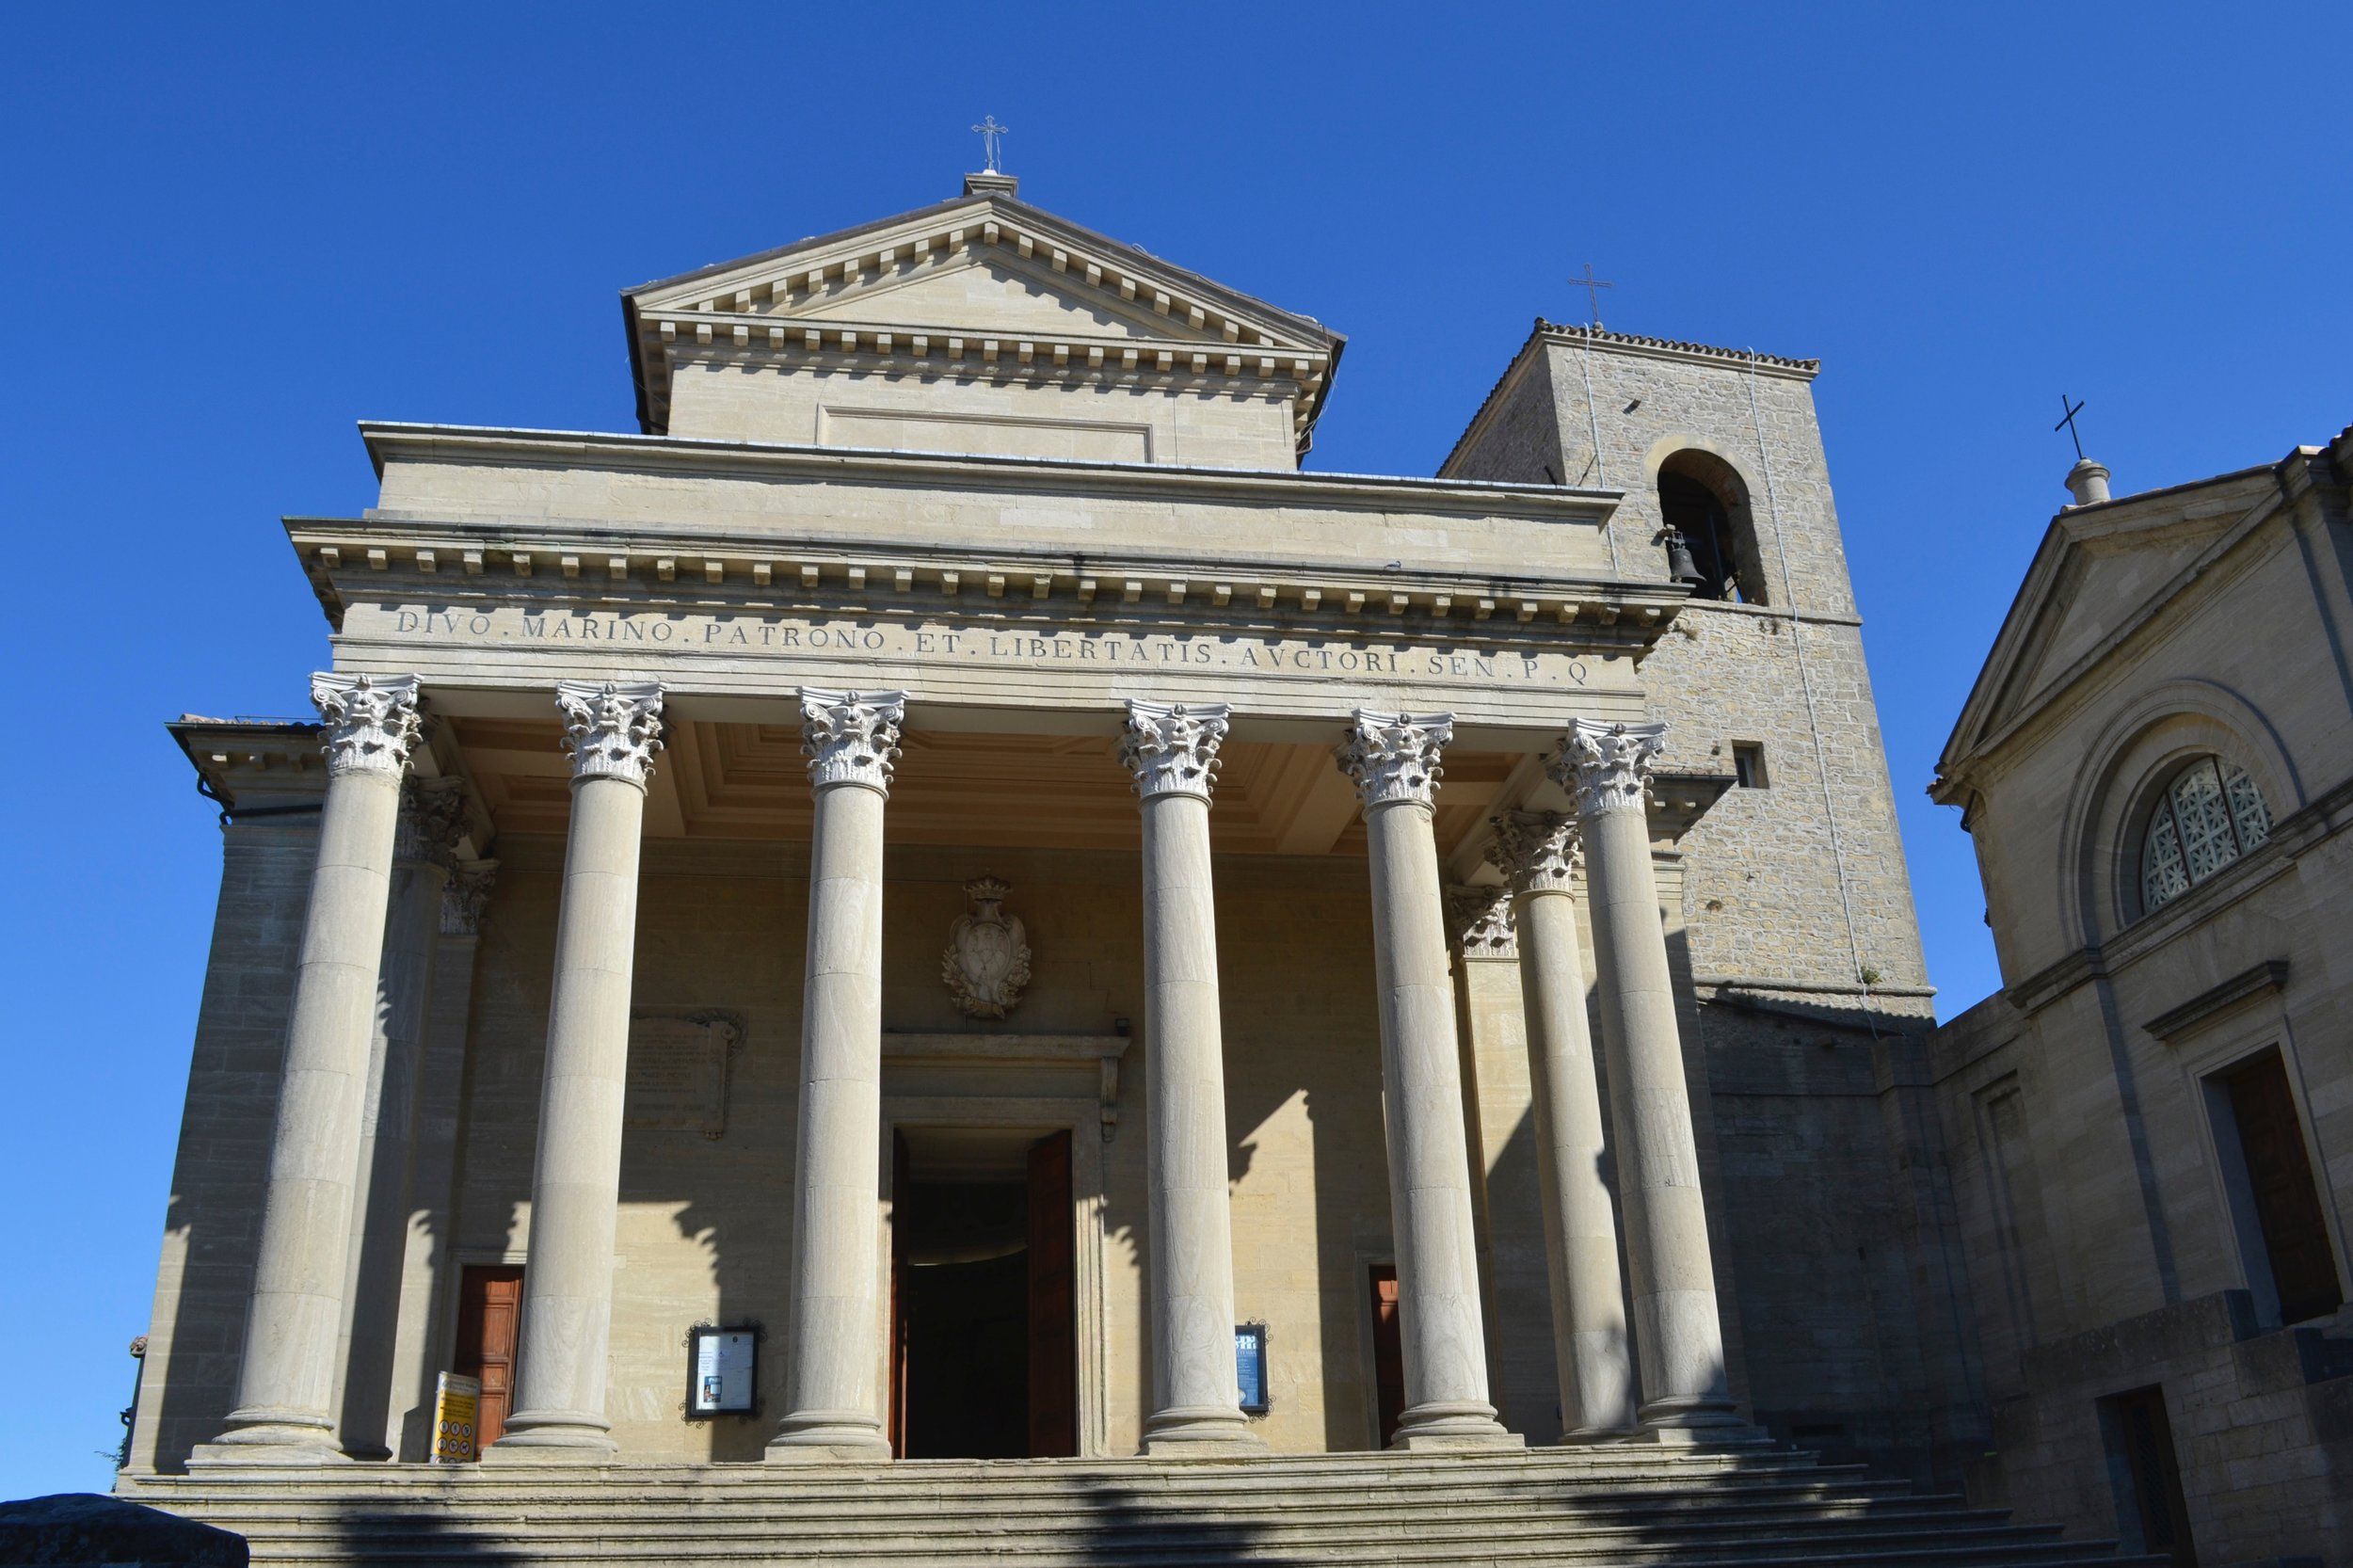 The Cathedral of San Marino